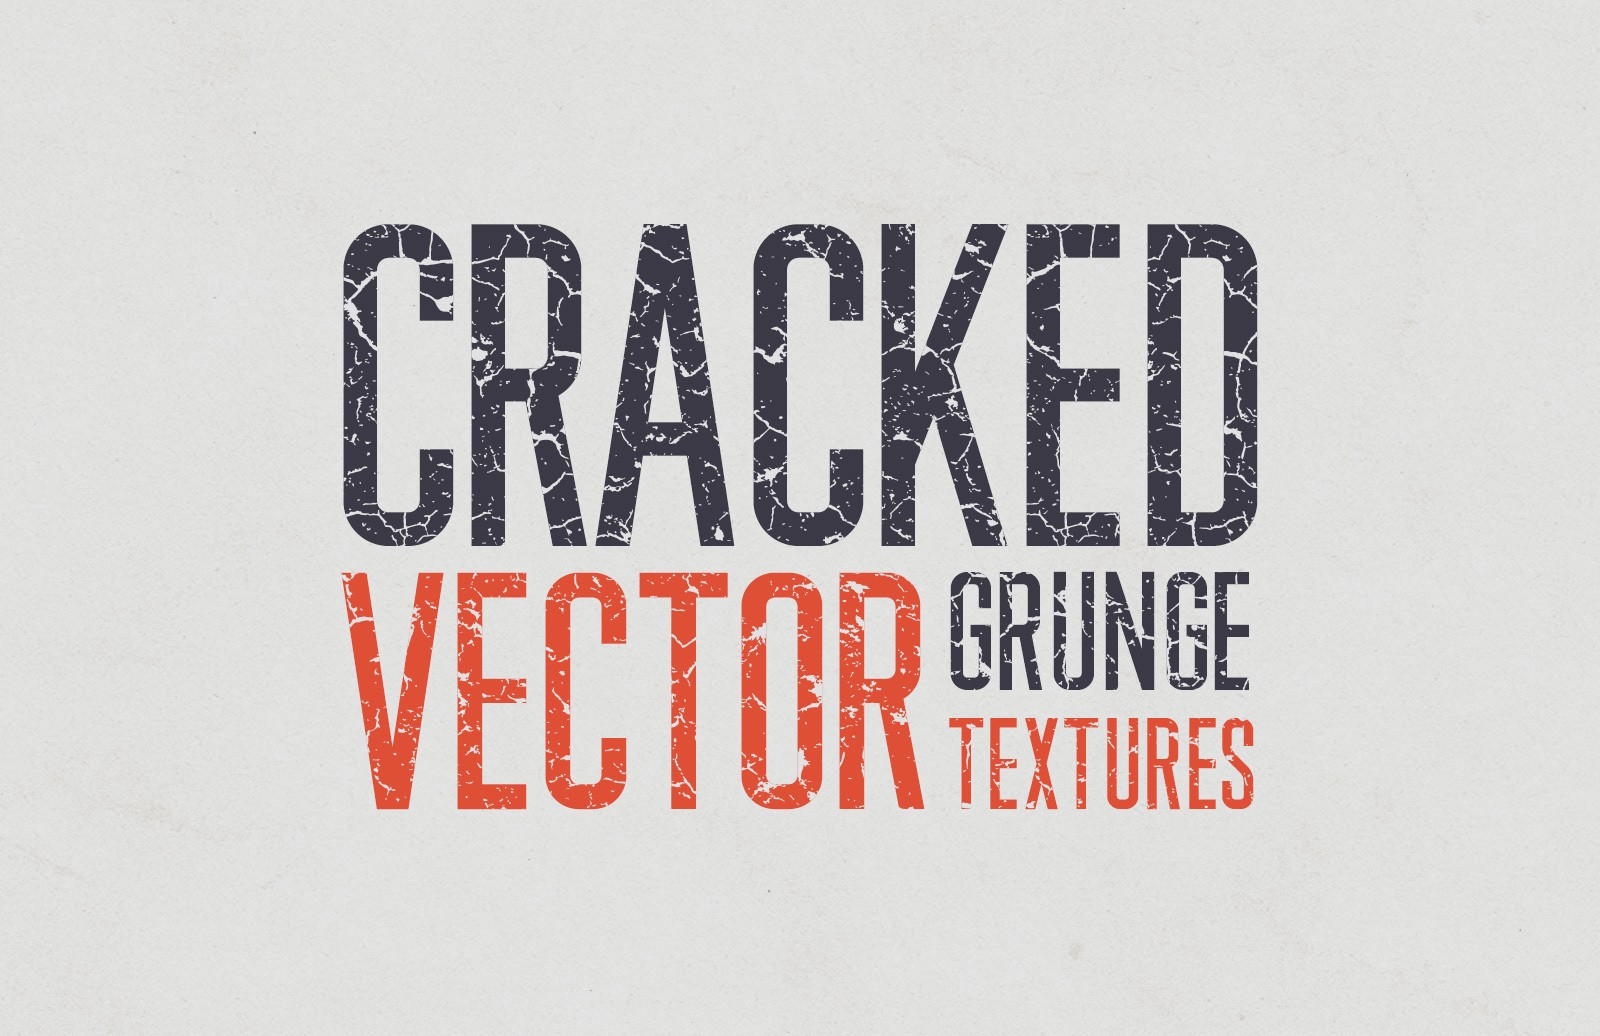 Cracked Vector Grunge Textures Preview 1